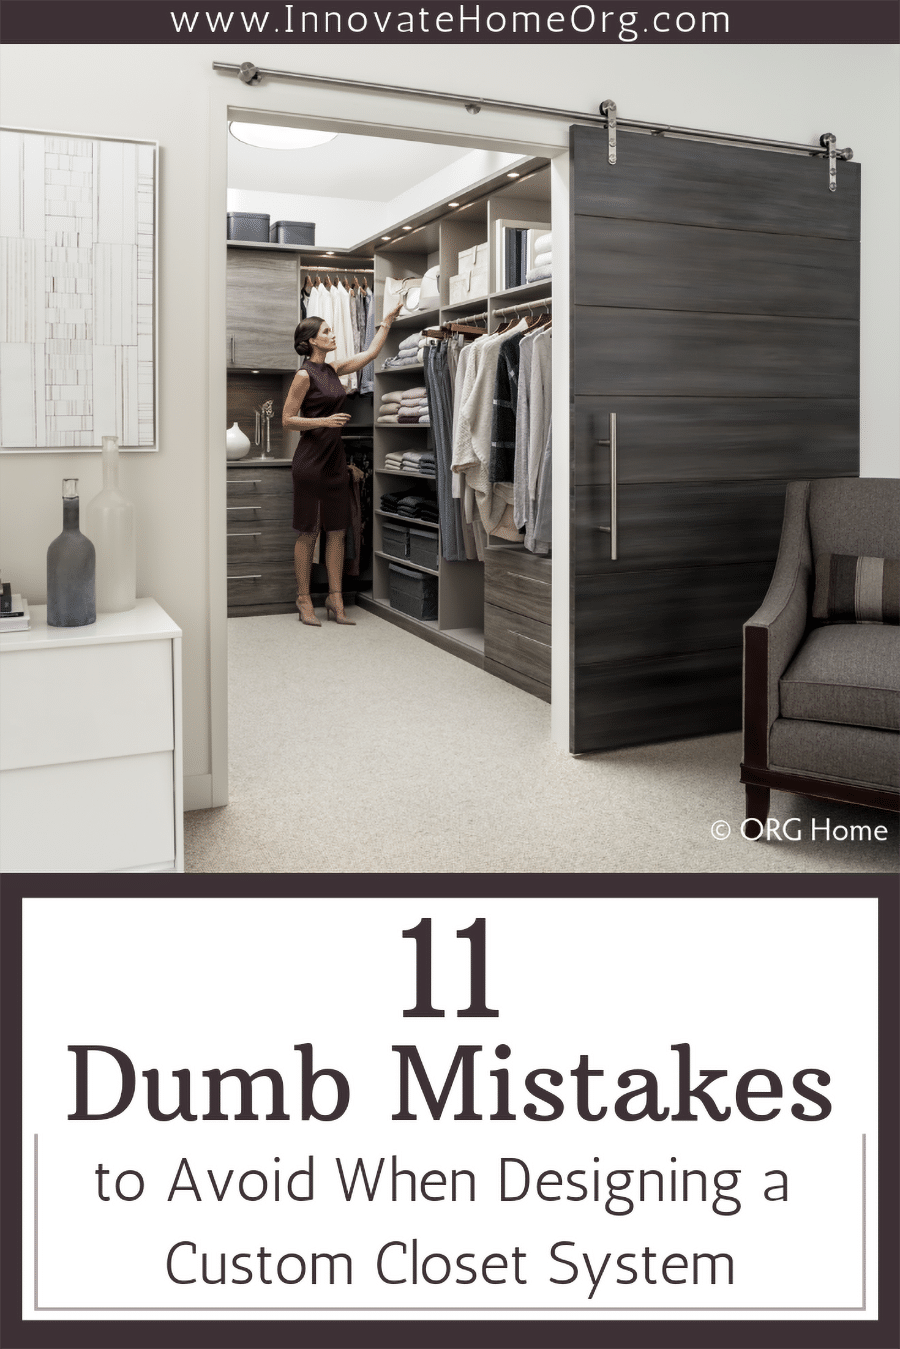 Problem 1 design - 11 Dumb Mistakes to Avoid Designing a Custom Closet System | Innovate Building Solutions | Innovate Home Org | #ClosetMistakes #DesigningCloset #ClosetSystem